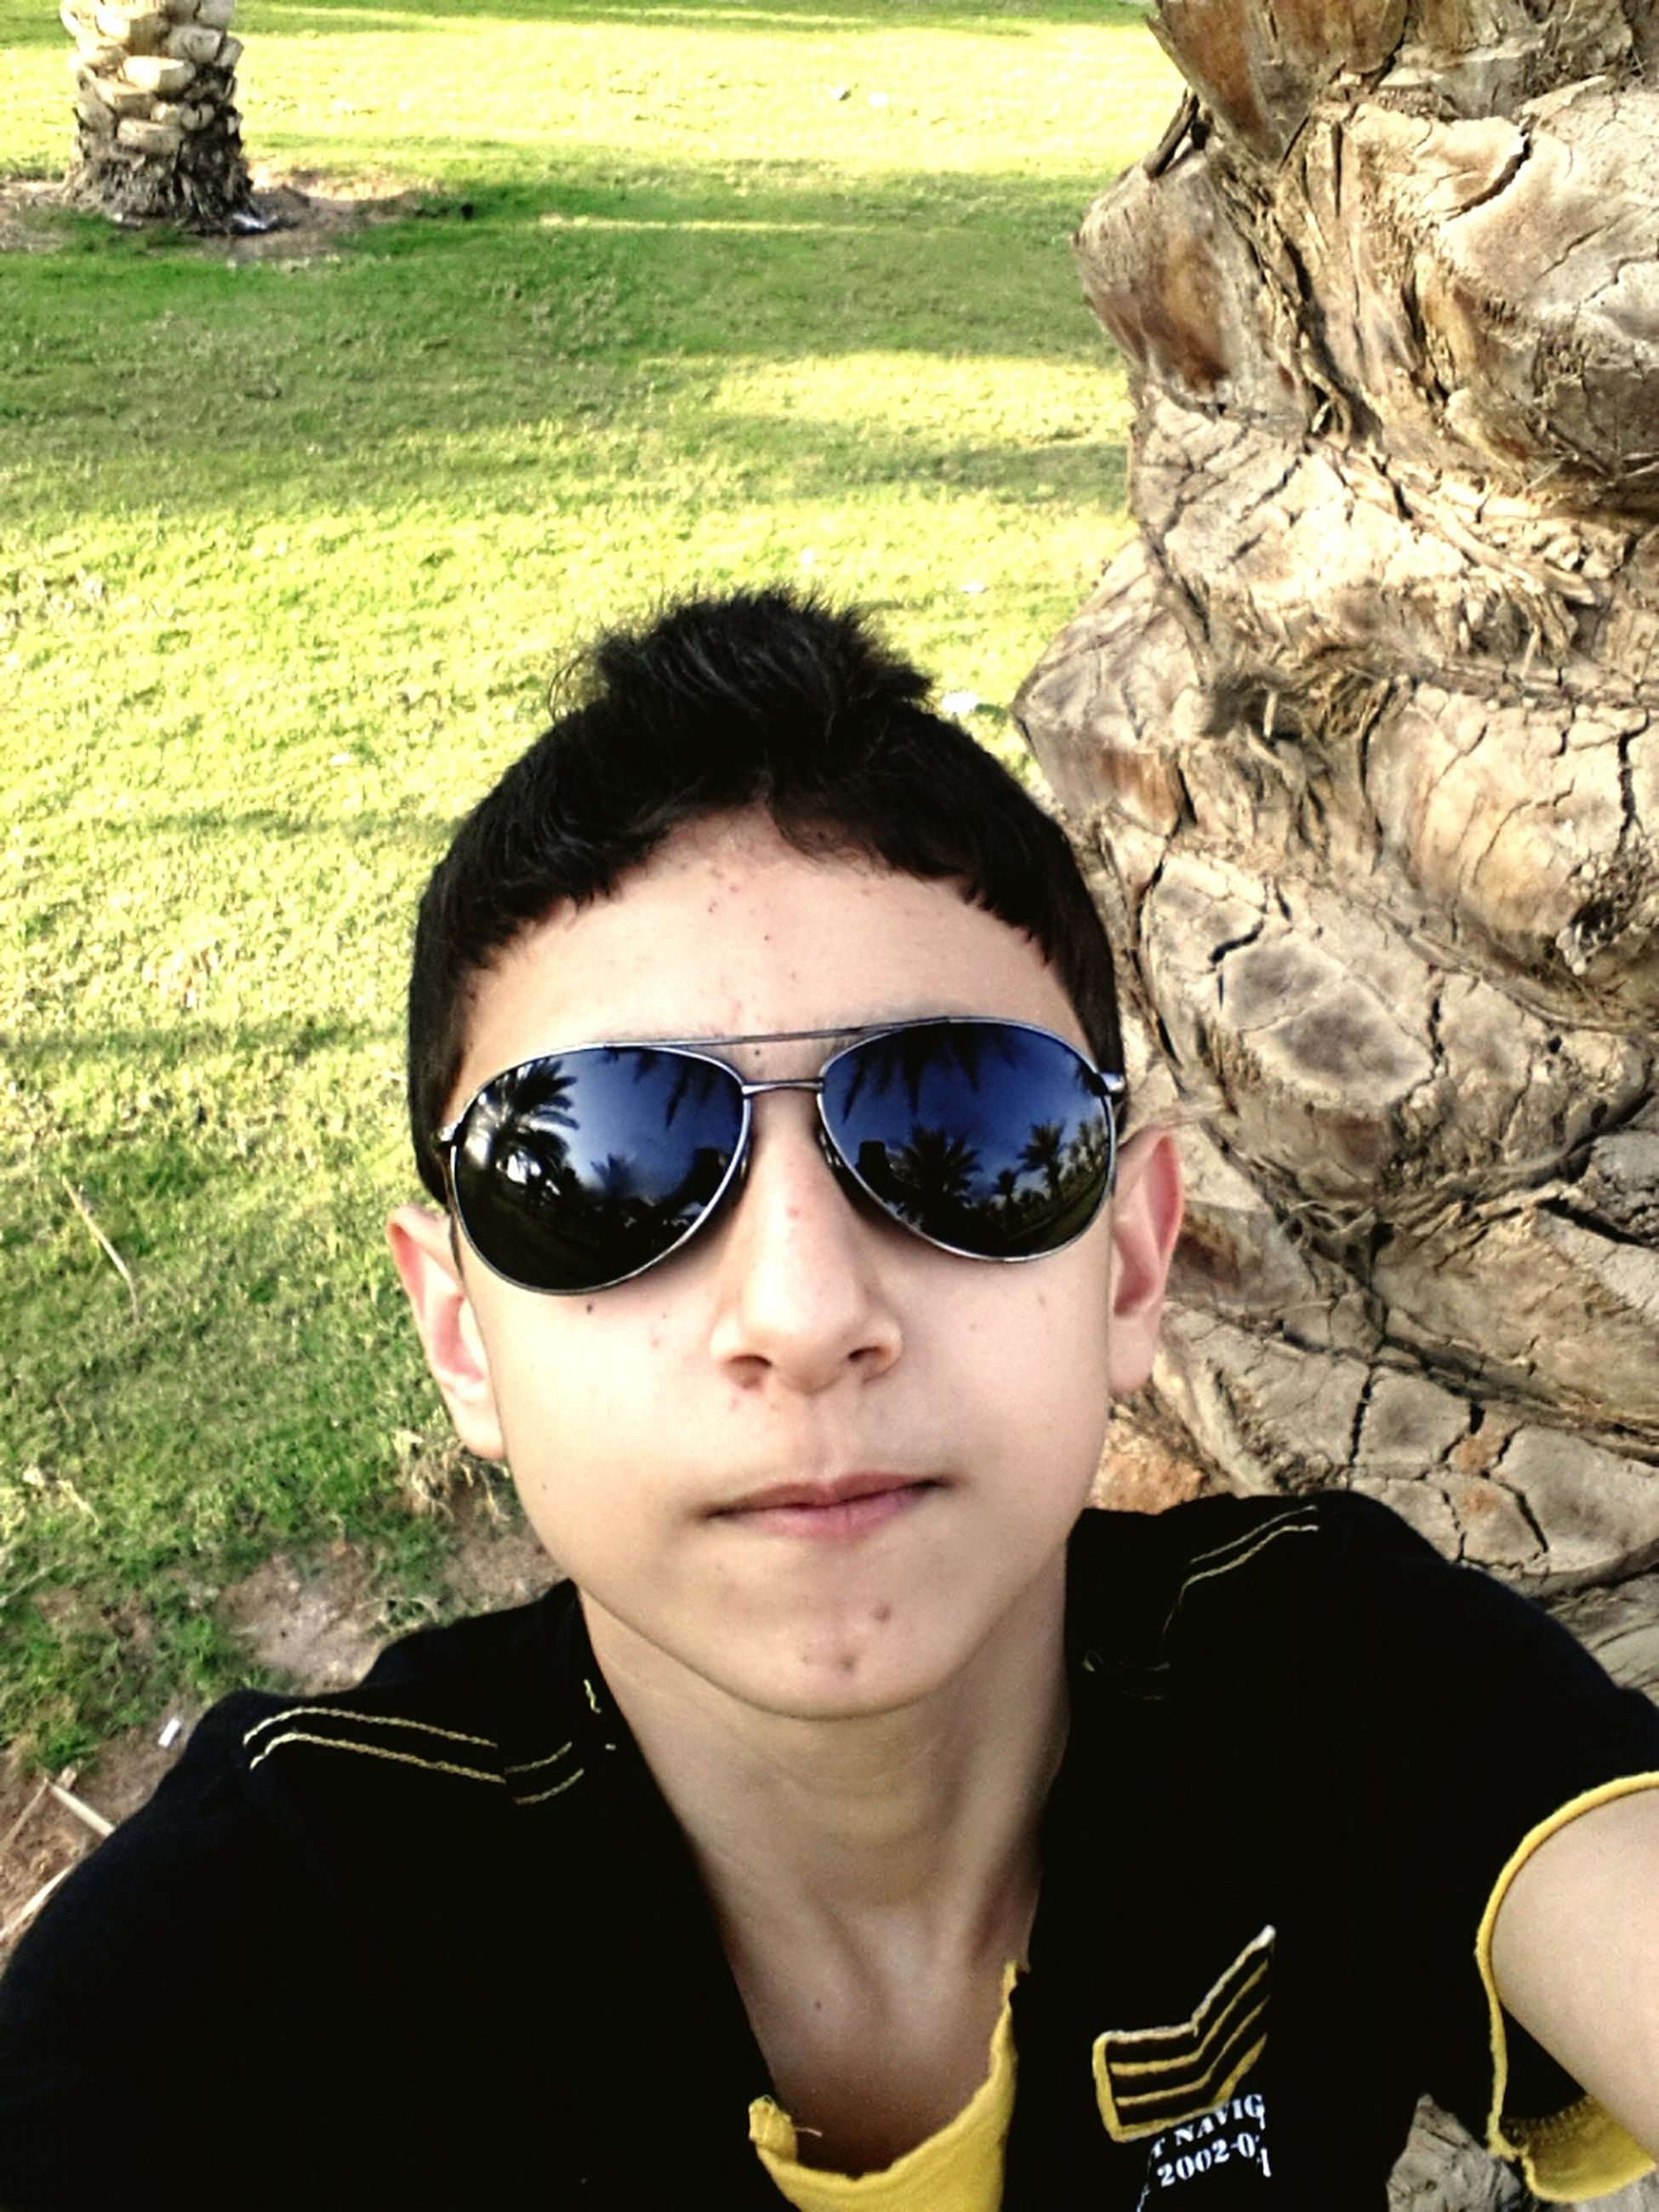 portrait, looking at camera, sunglasses, headshot, lifestyles, person, front view, young men, young adult, leisure activity, close-up, smiling, head and shoulders, mid adult men, focus on foreground, human face, day, handsome